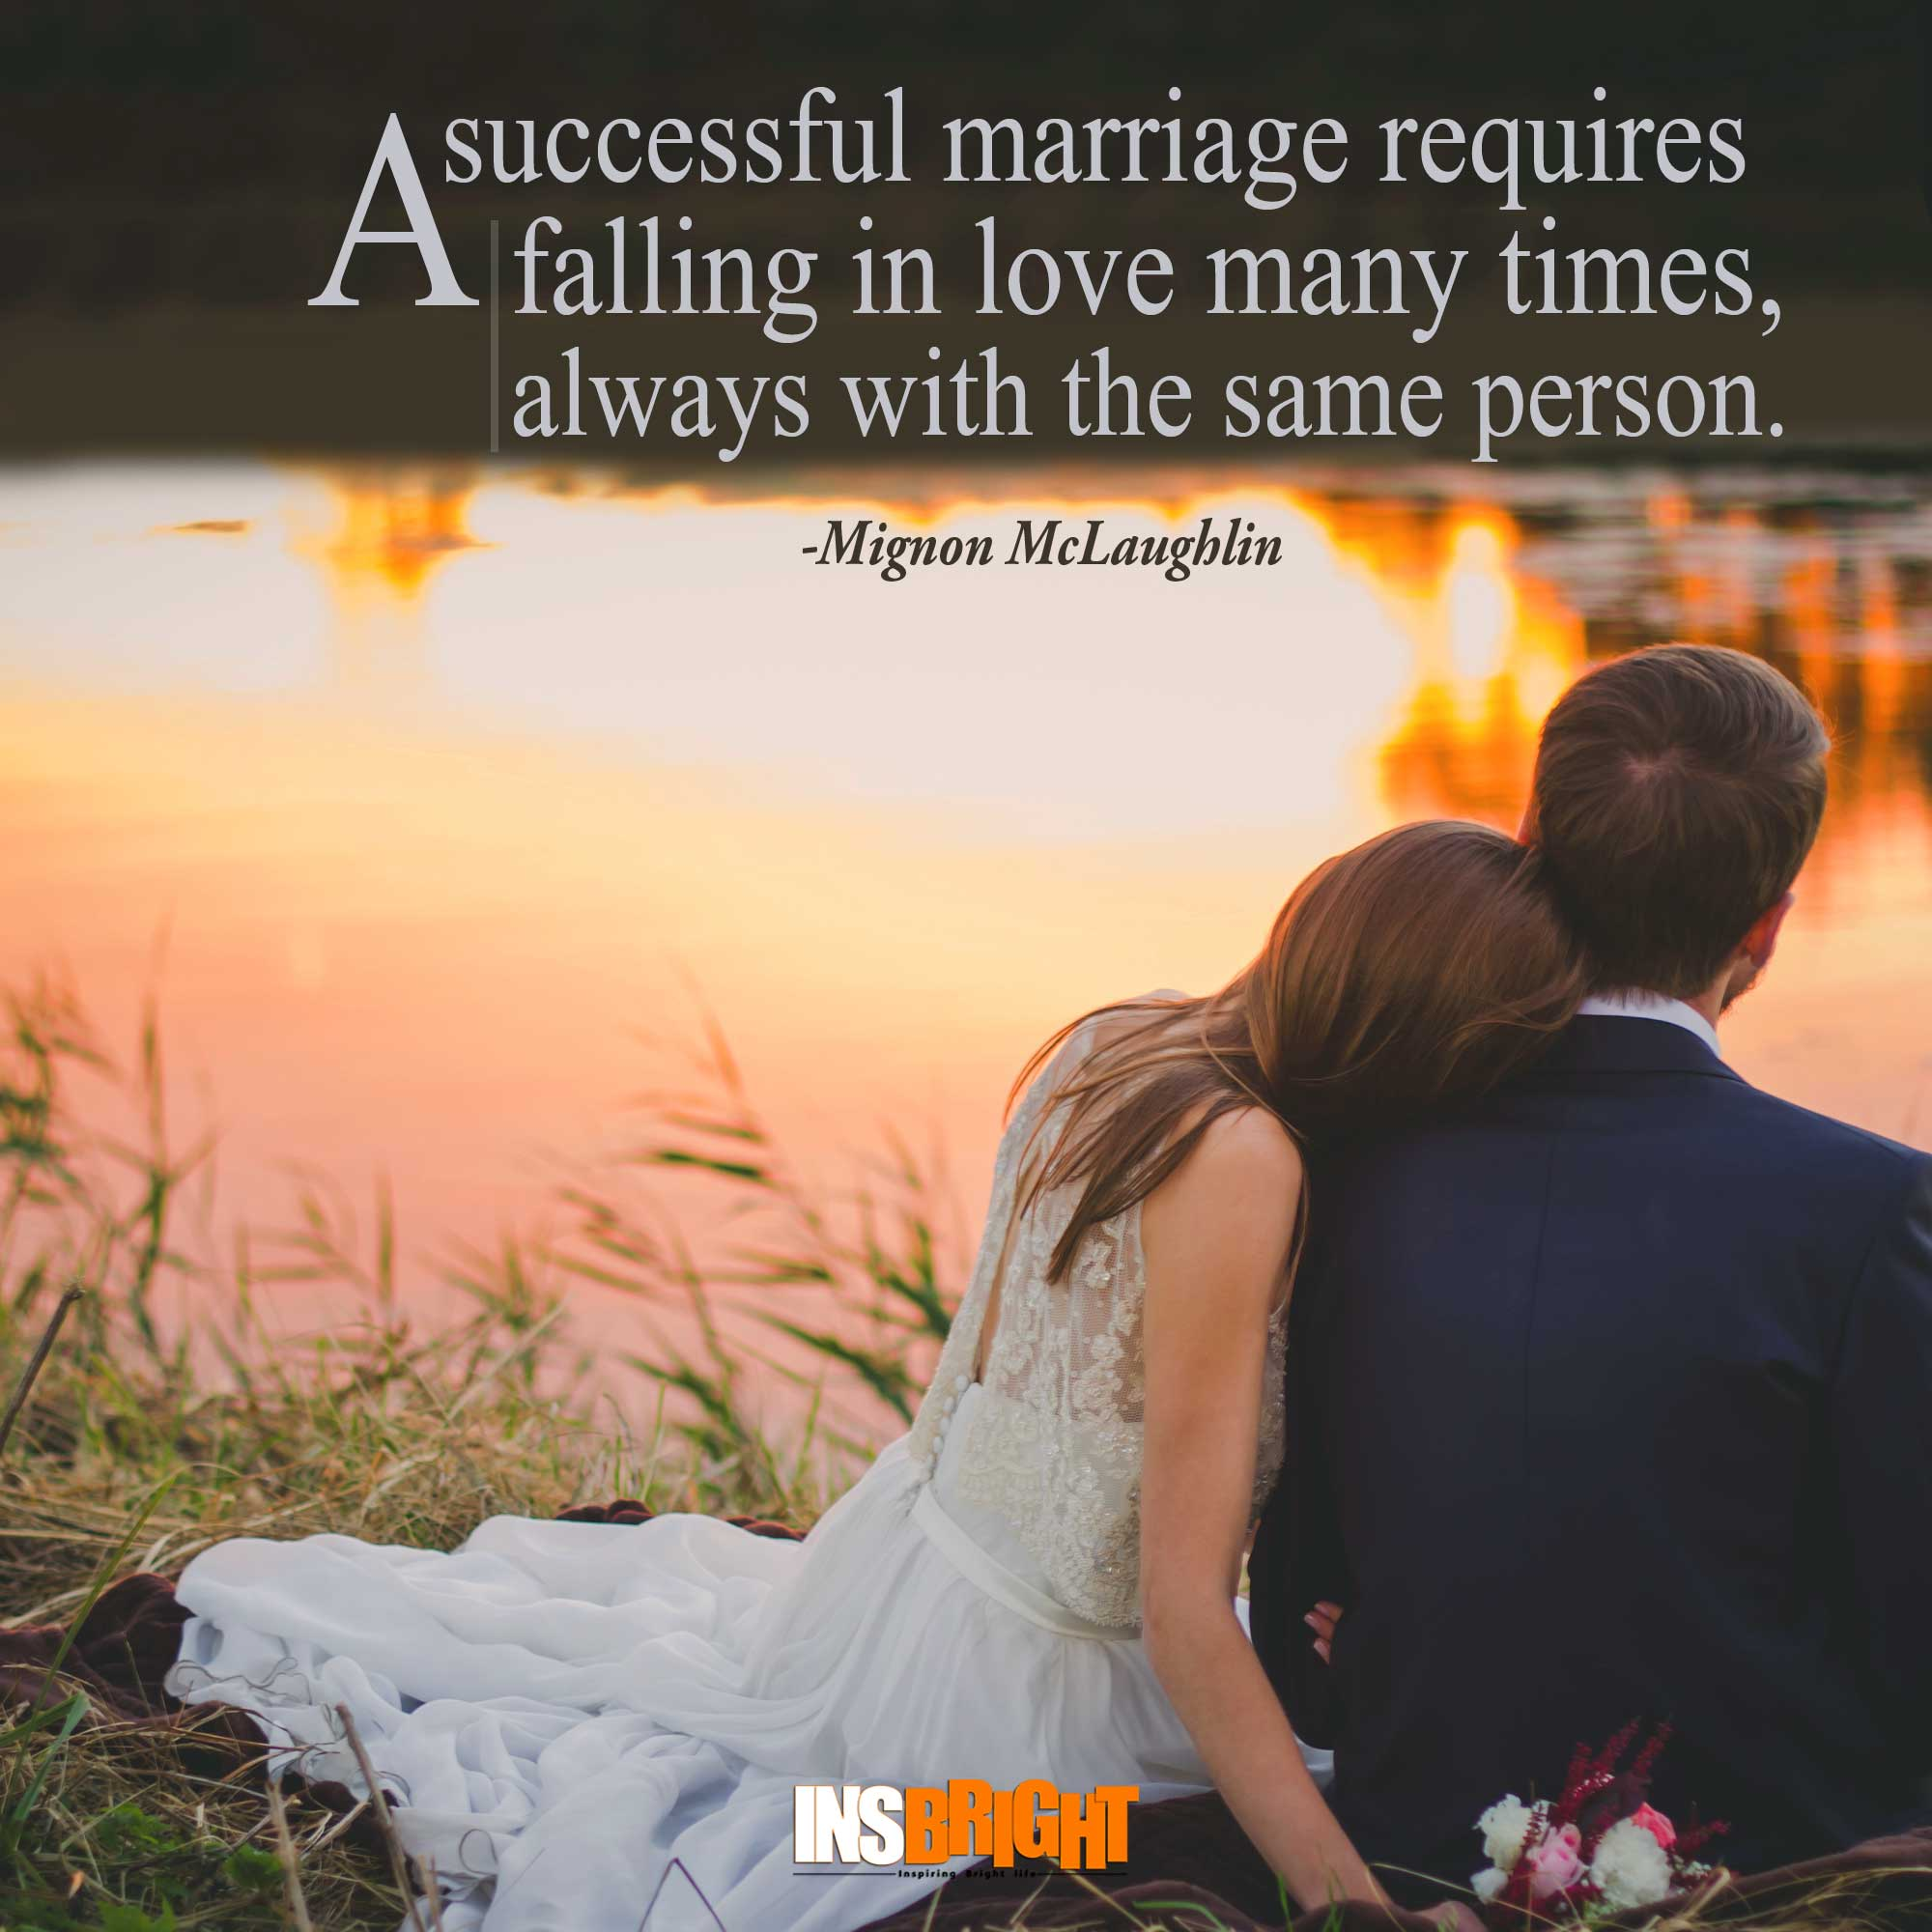 Inspirational Wedding Quotes Inspirational Marriage Quotesfamous People With Images  Insbright